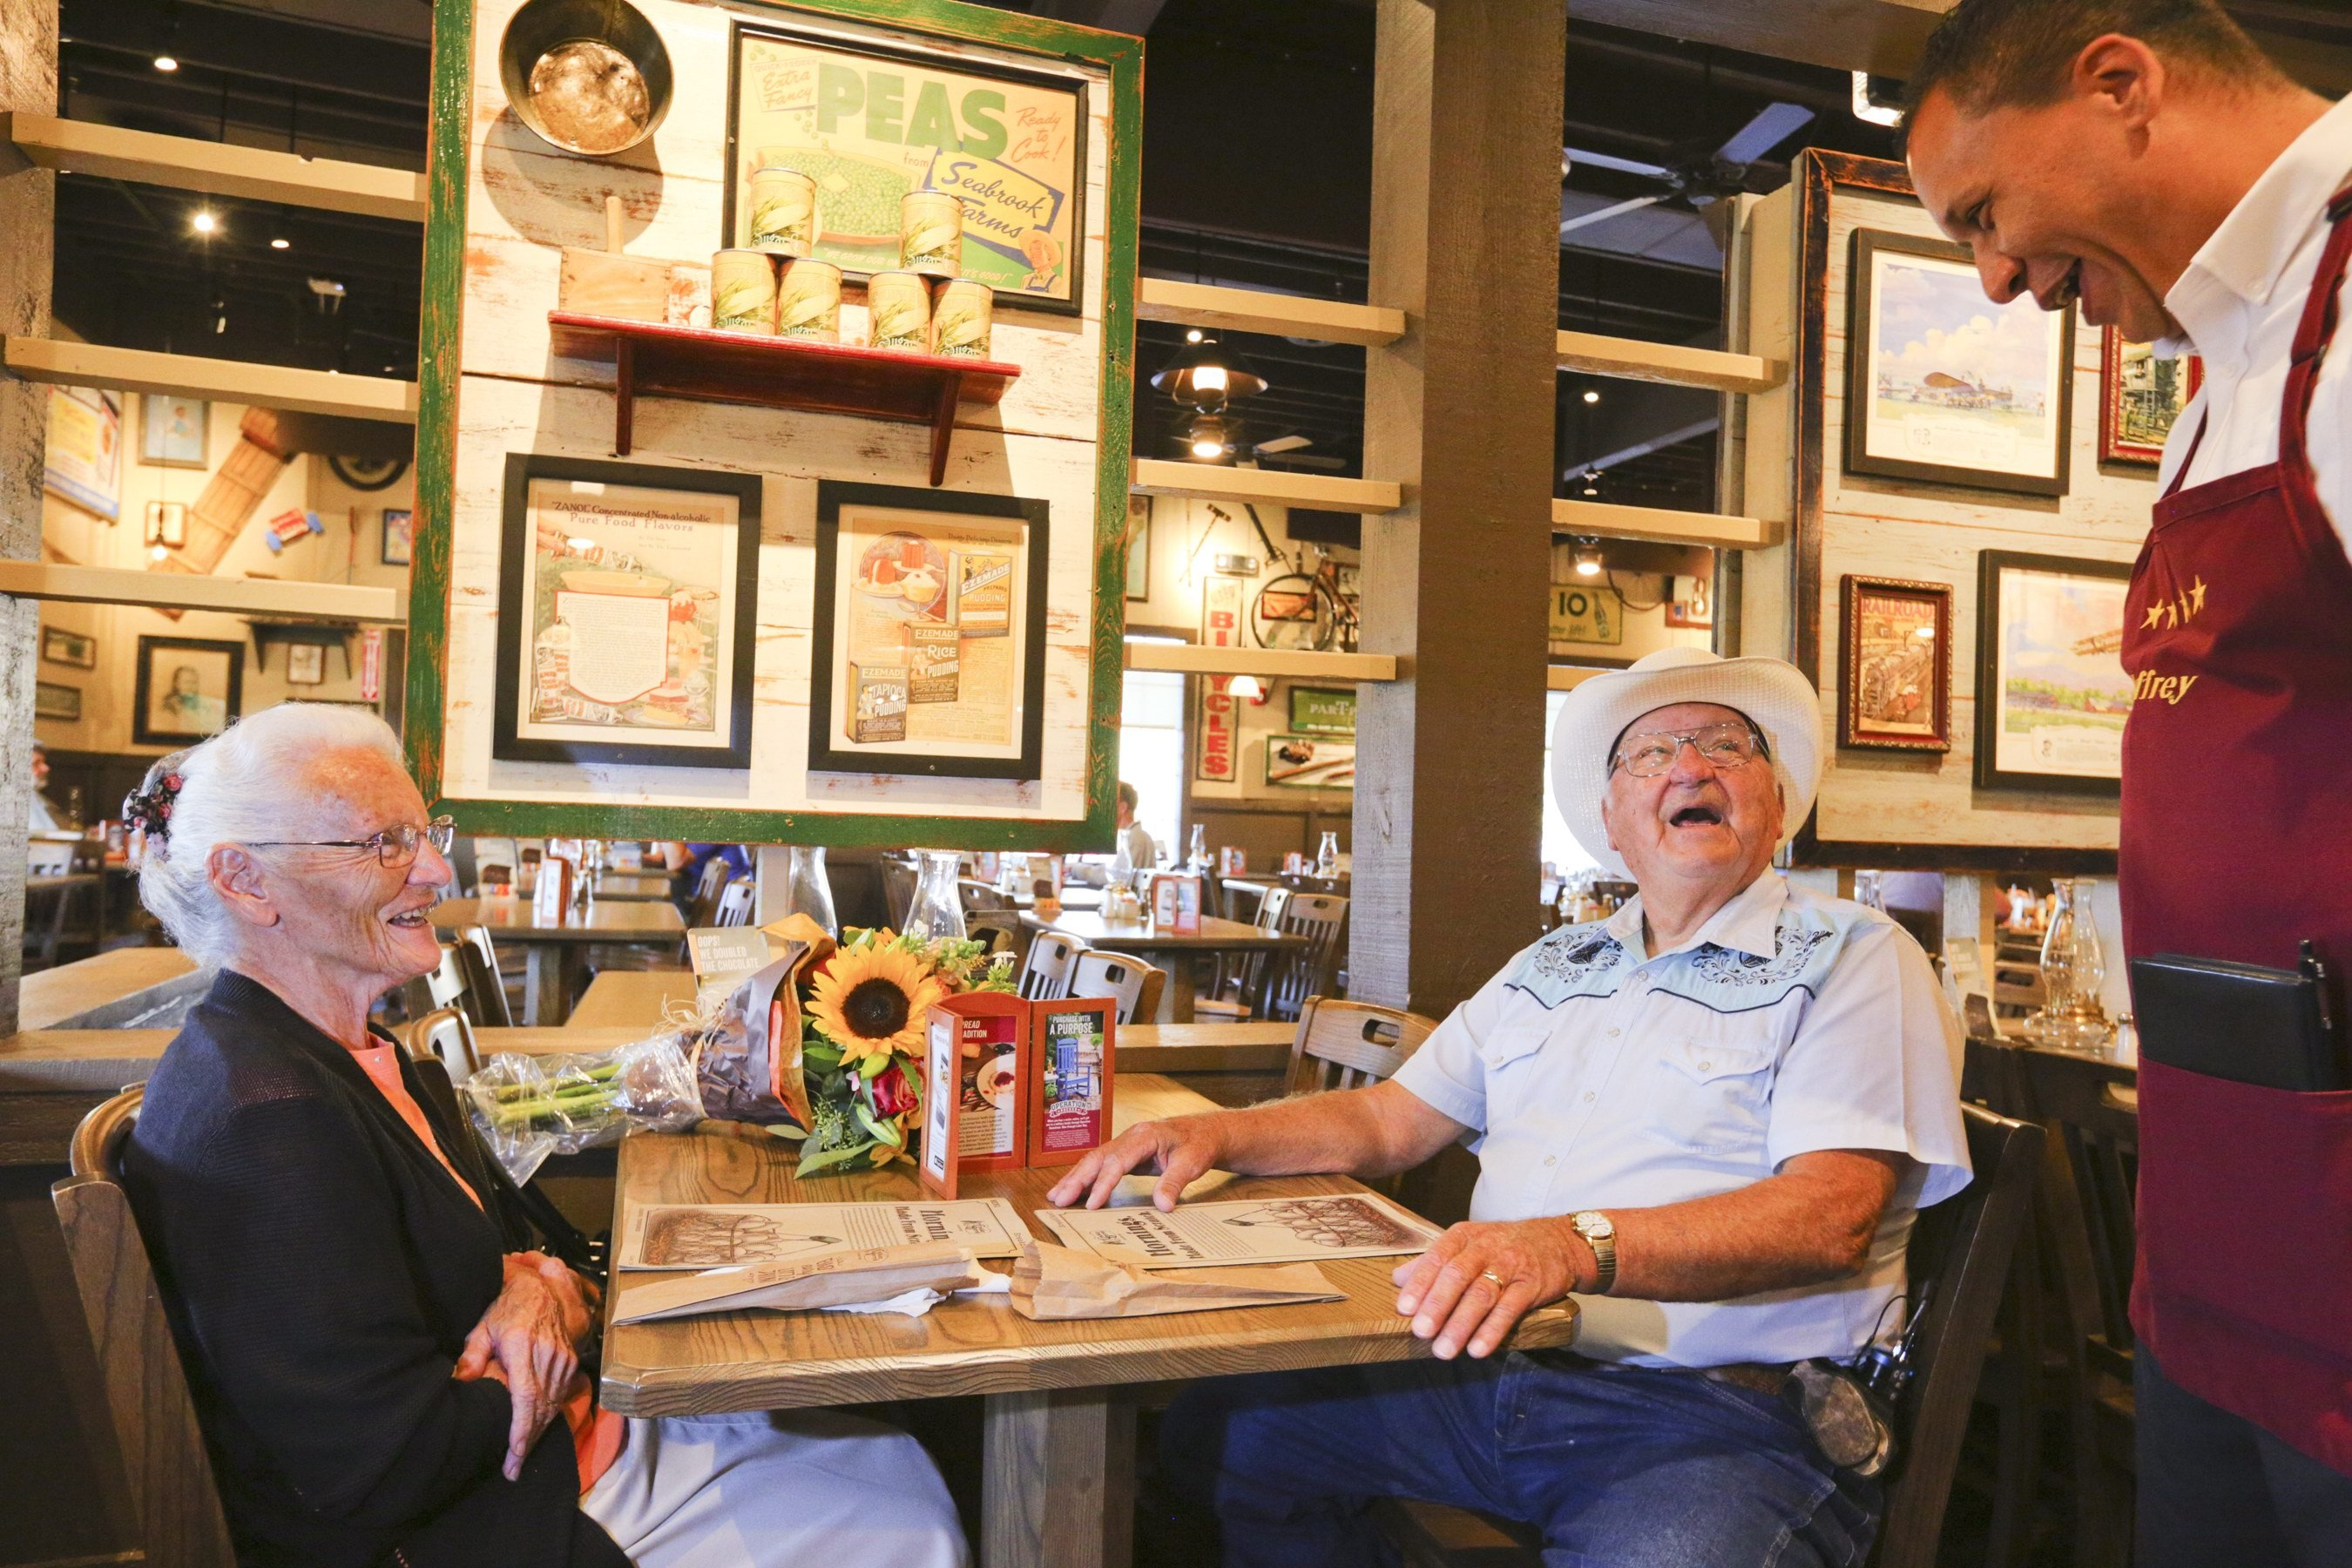 NJ was key to a senior couple's epic Cracker Barrel mission